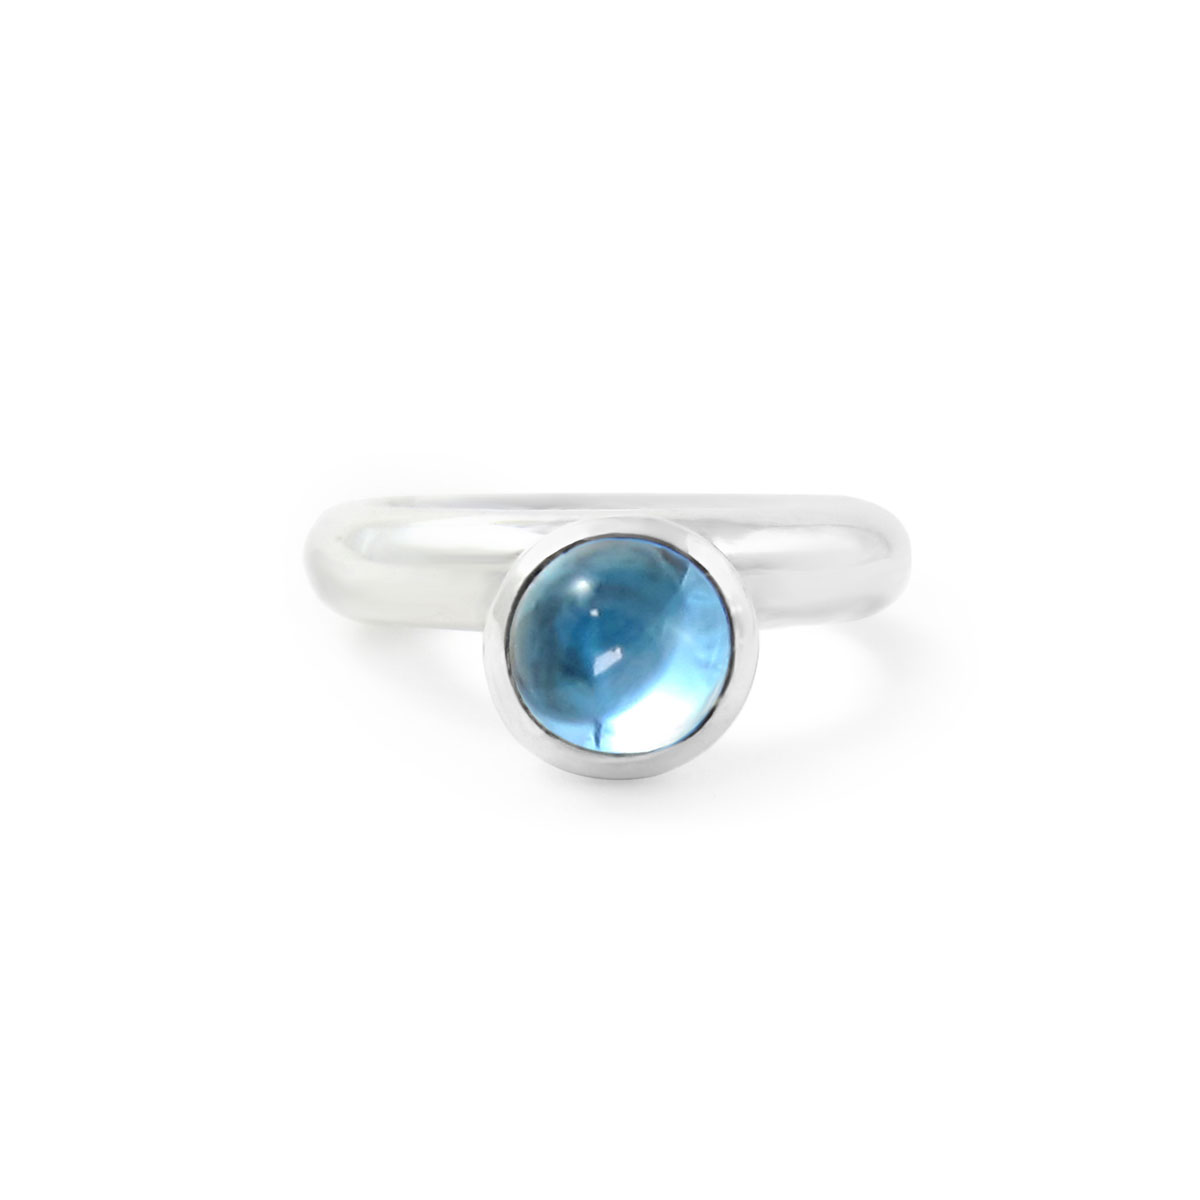 Full Circle Blue Topaz Cabochon Ring Fairina Cheng Jewellery